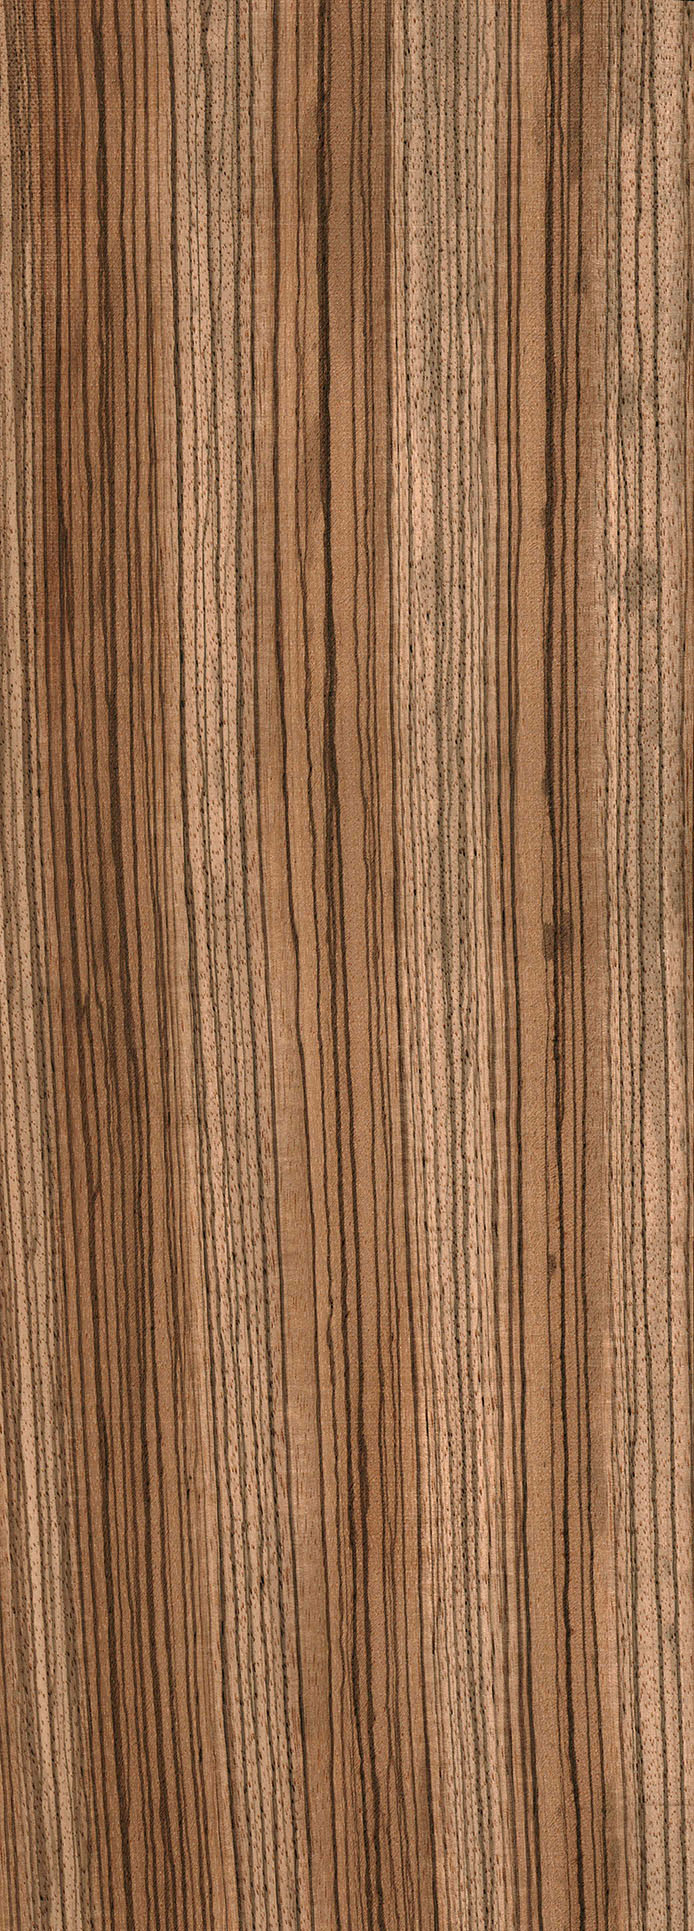 Zebrawood The Wood Database Lumber Identification